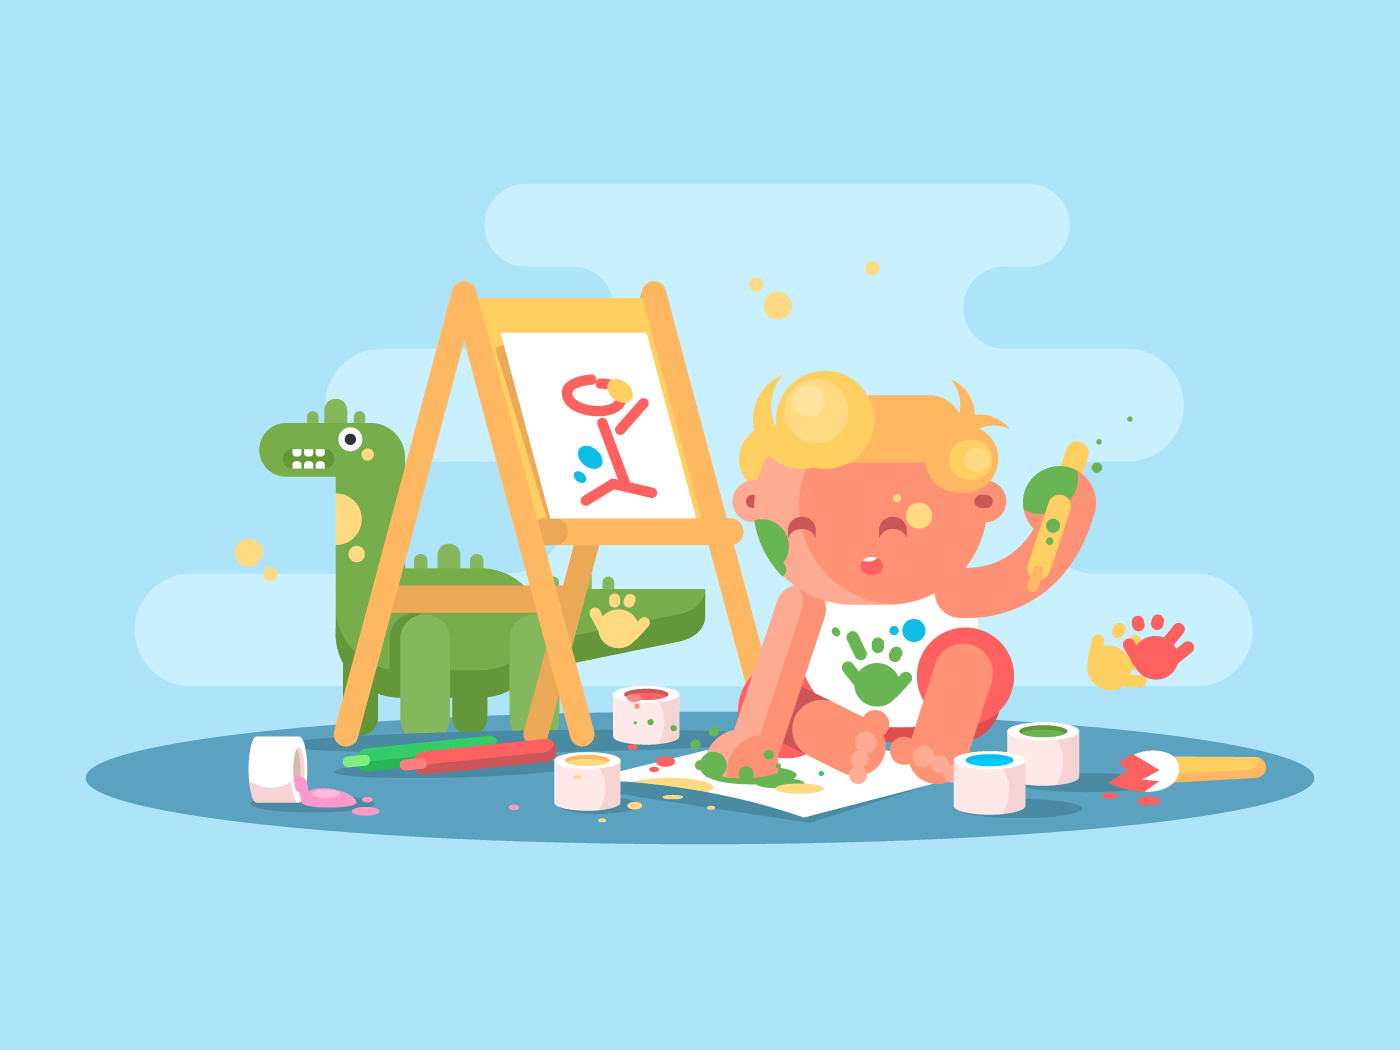 Little young baby artist flat vector illustration